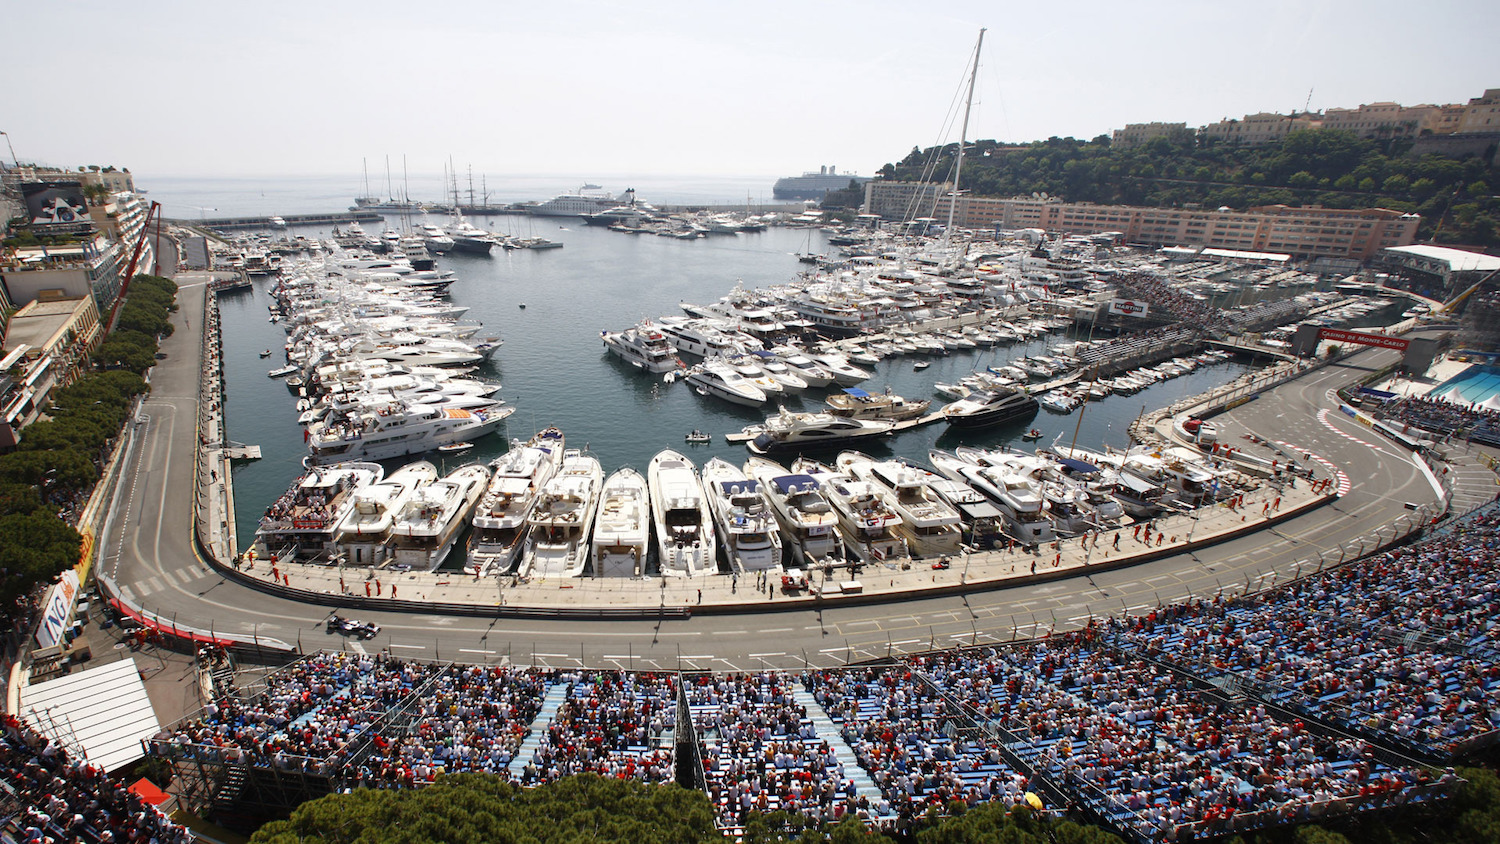 Yachts at the Monaco Grand Prix